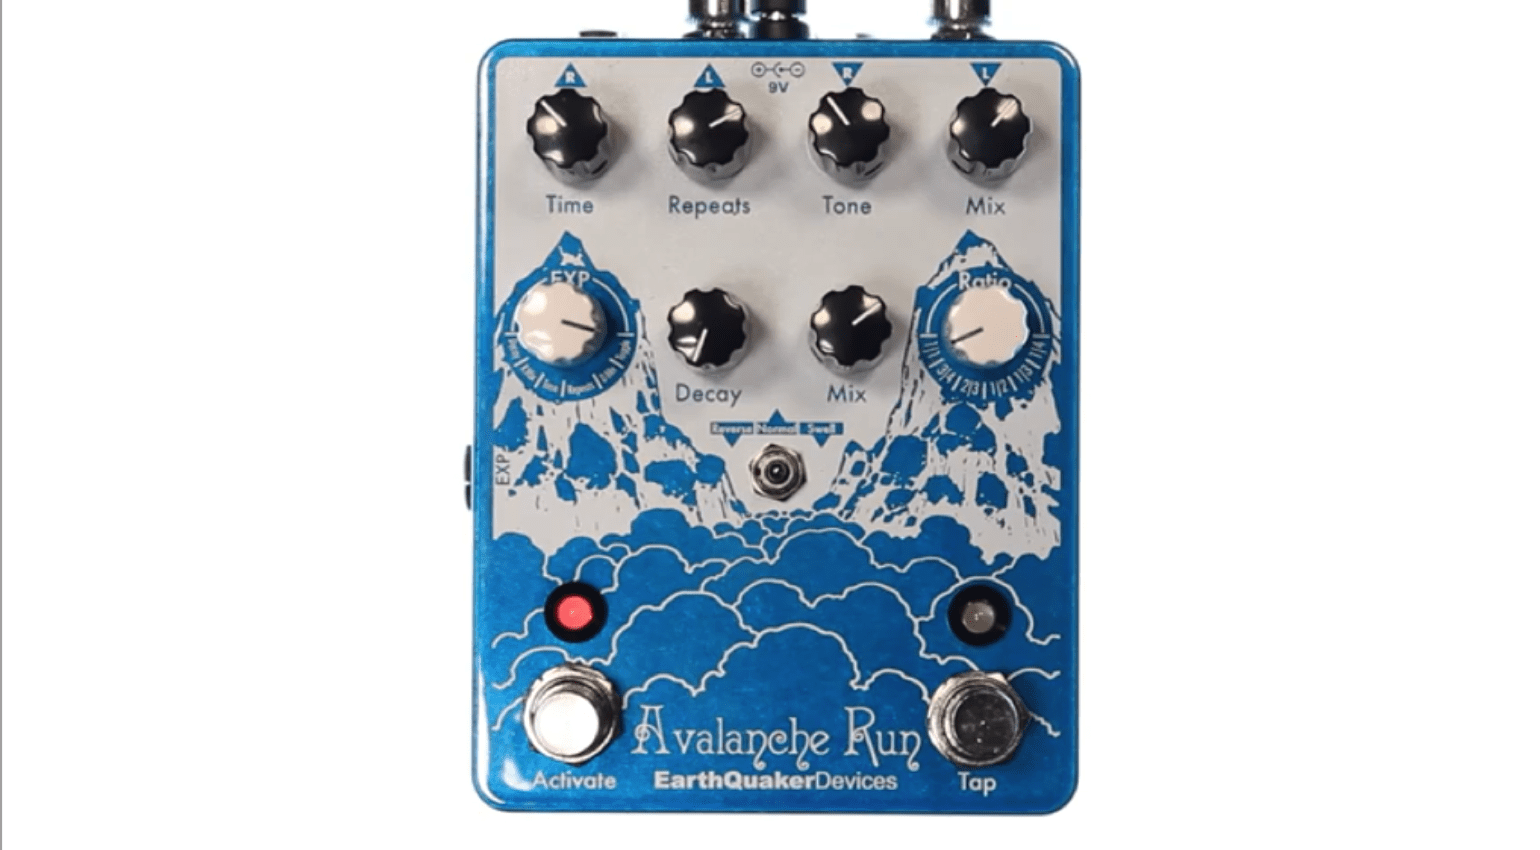 EarthQuaker Devices Avalanche Run pedal - New DSP chip with